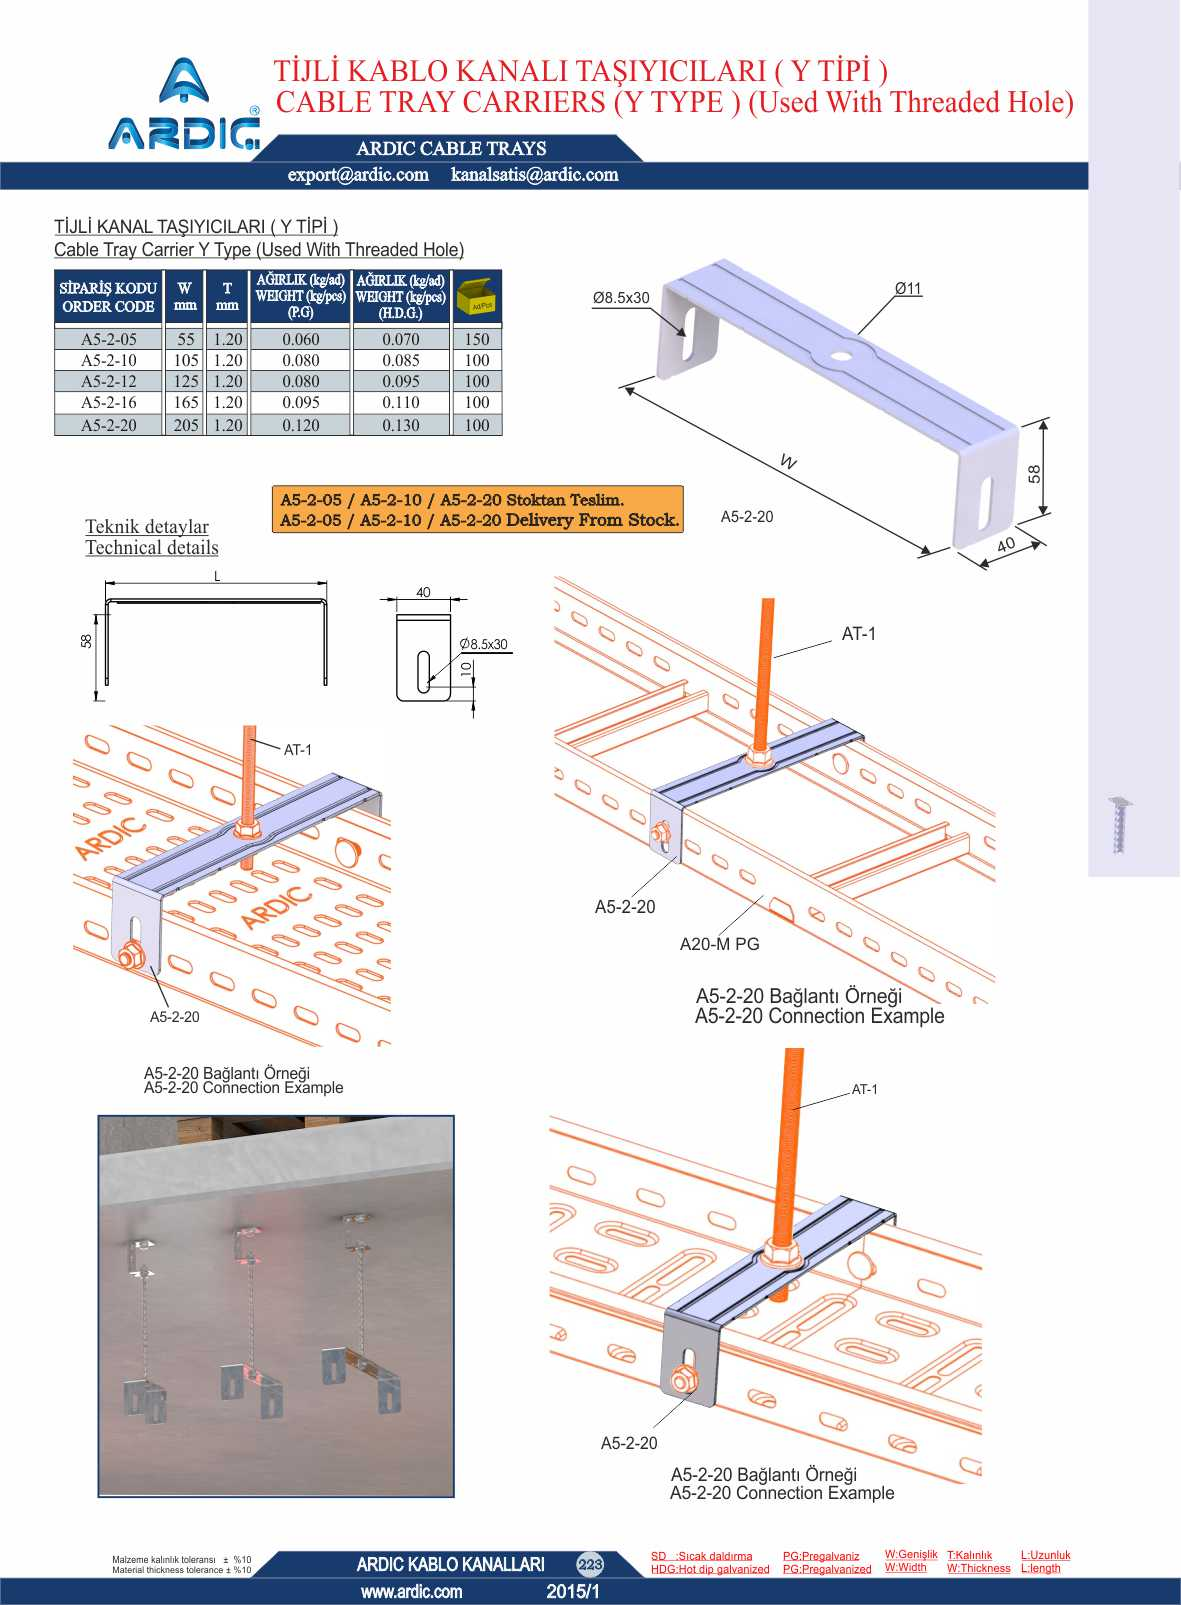 cable tray Cable tray system manufacturers in riyadh - kingdom of saudi arabia, we produce all cable tray system in our factory, high quality cable tray system.